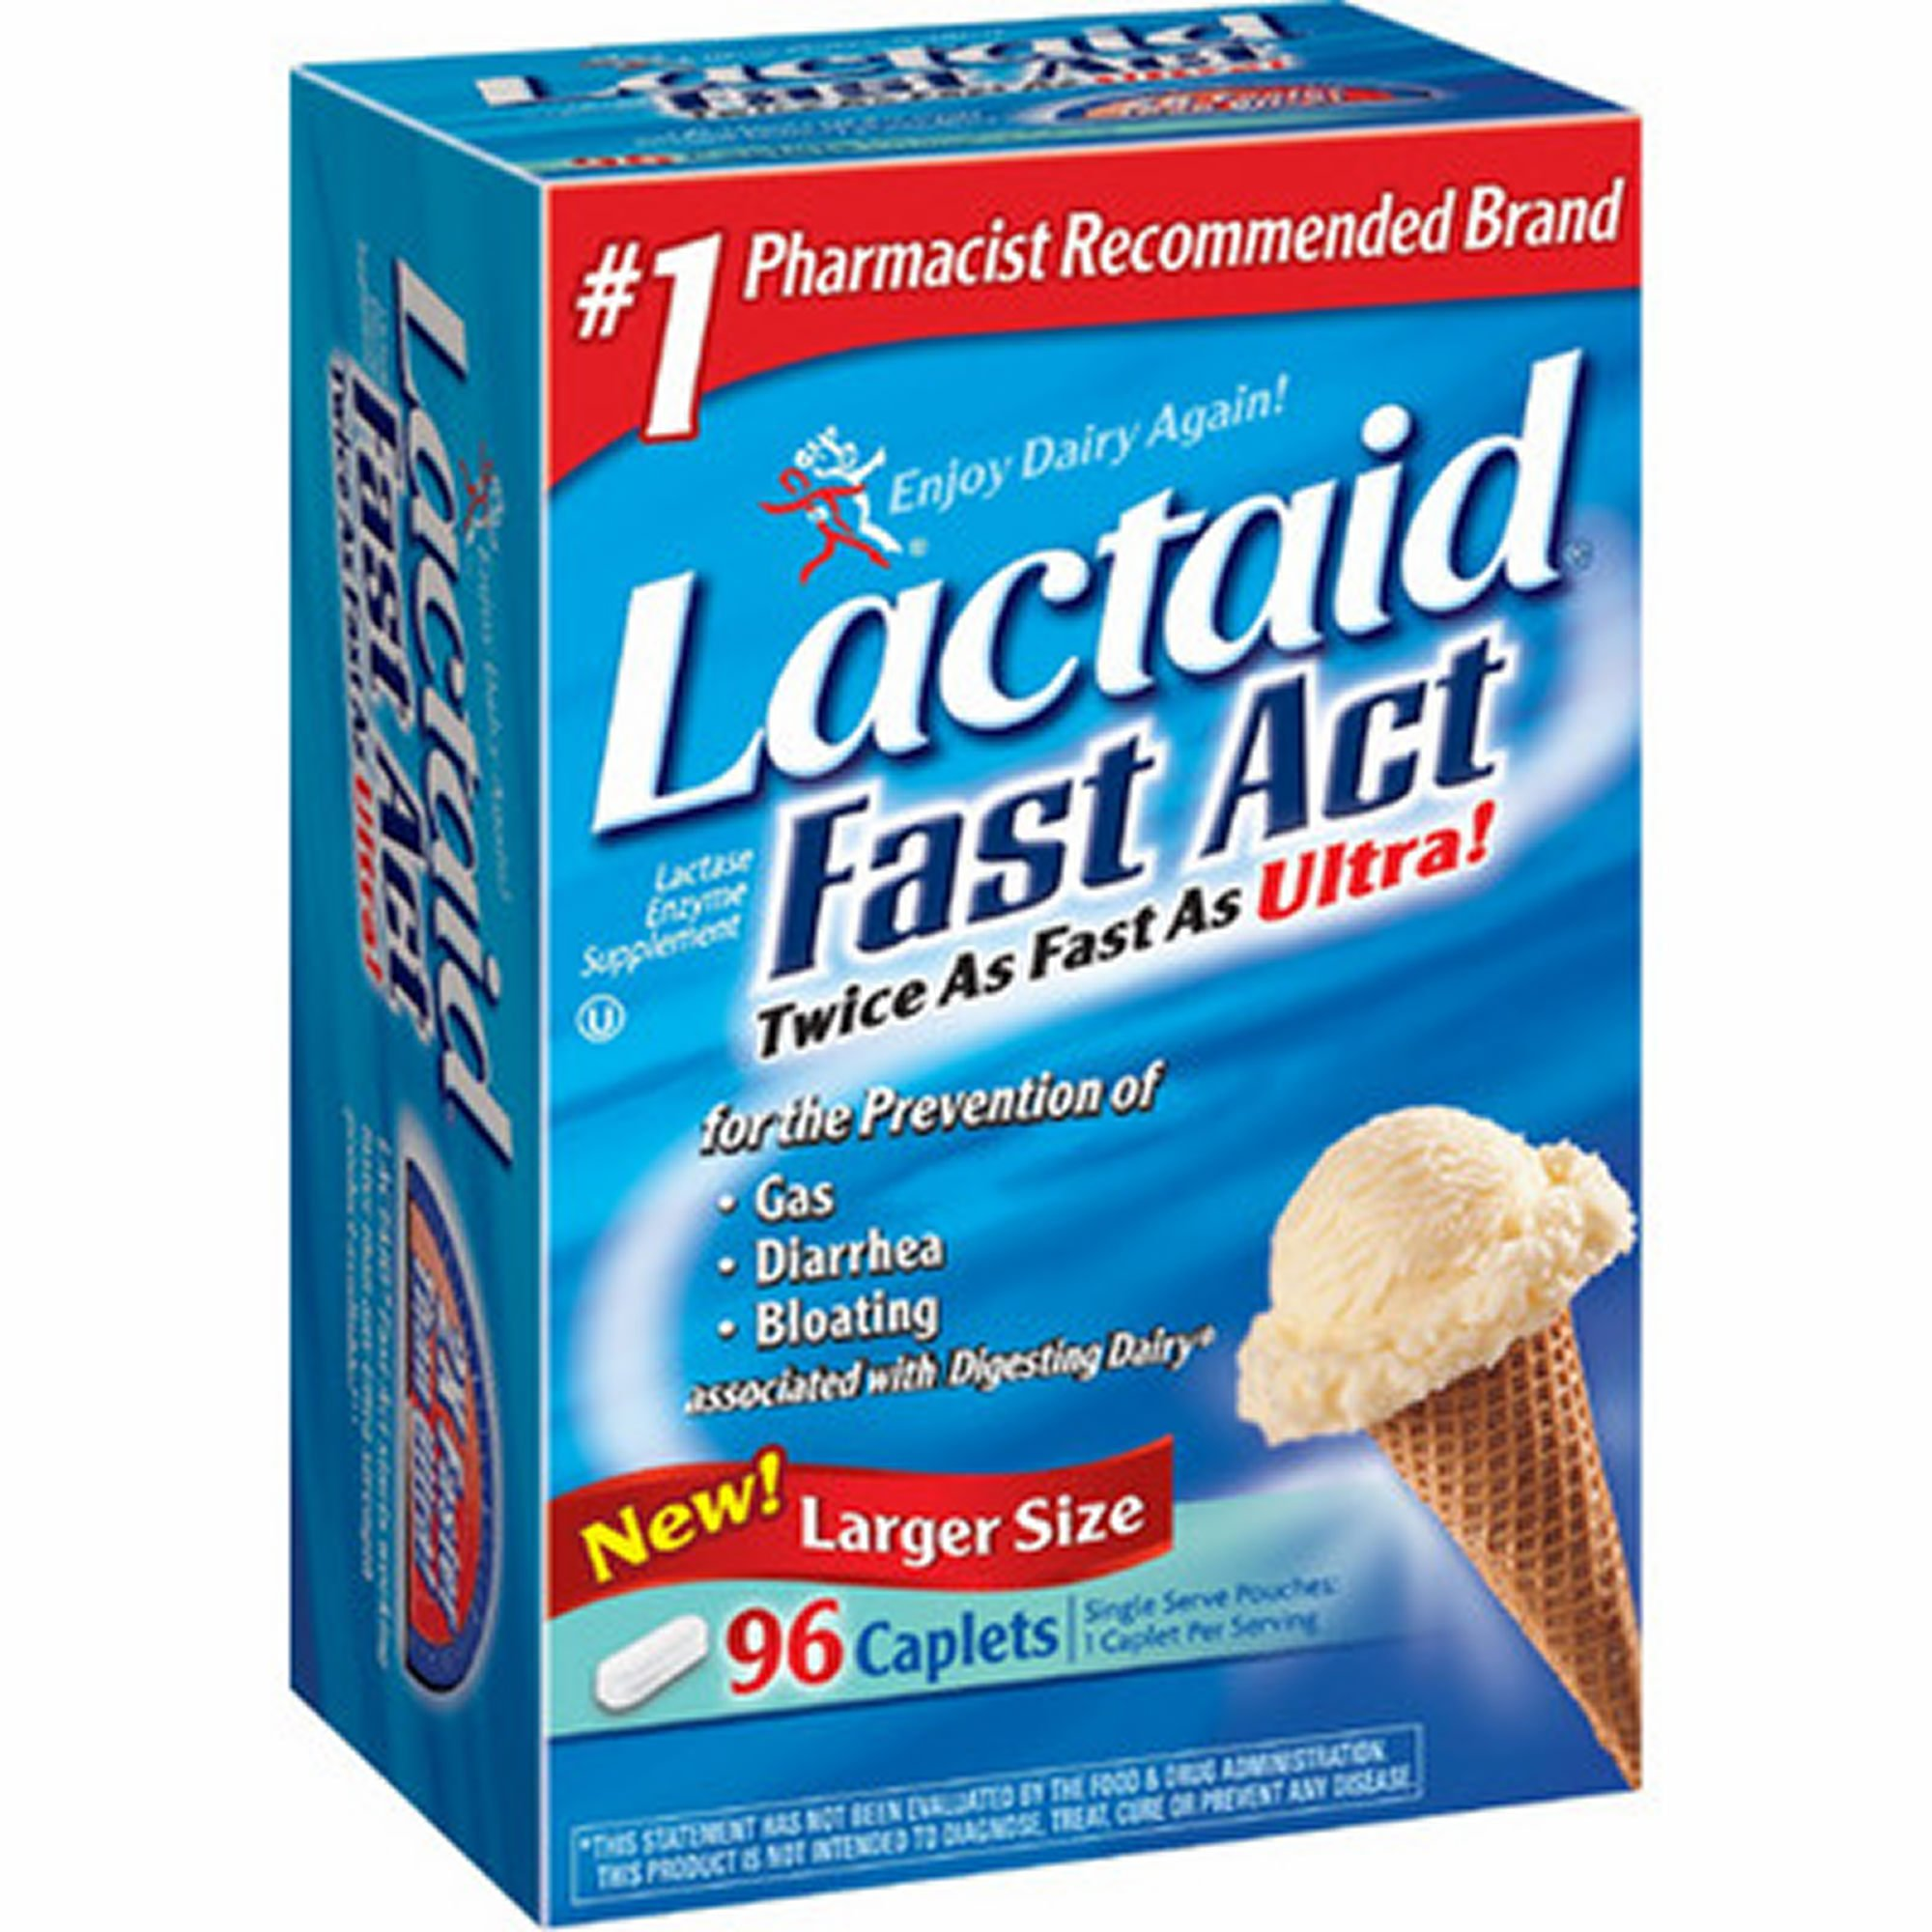 Lactaid Fast Act Lactase Enzyme Supplement, 96 ct. (pack of 6) by Lactaid